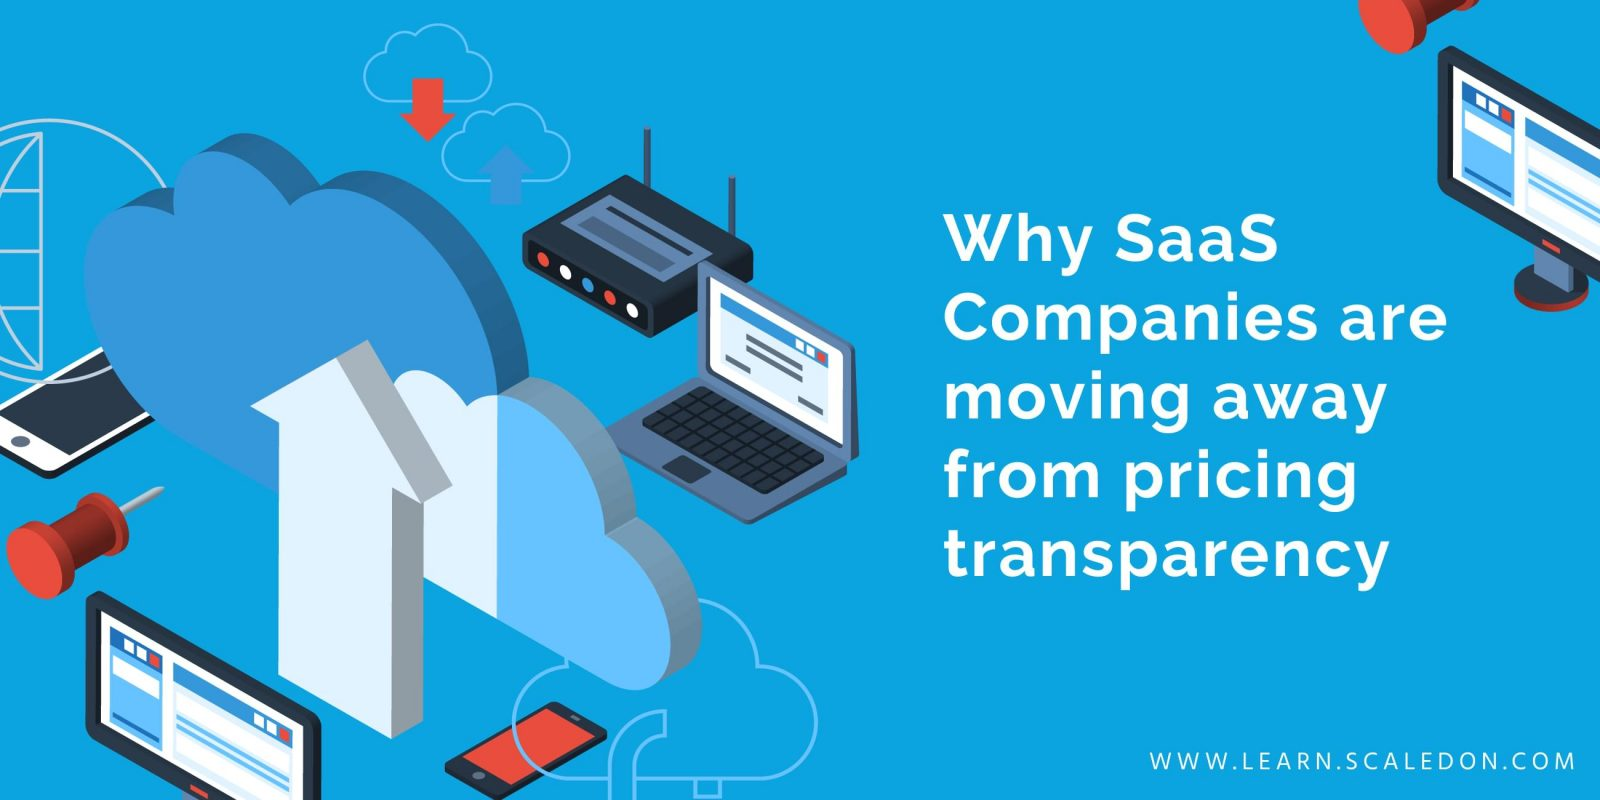 Why SaaS Companies are moving away from pricing transparency